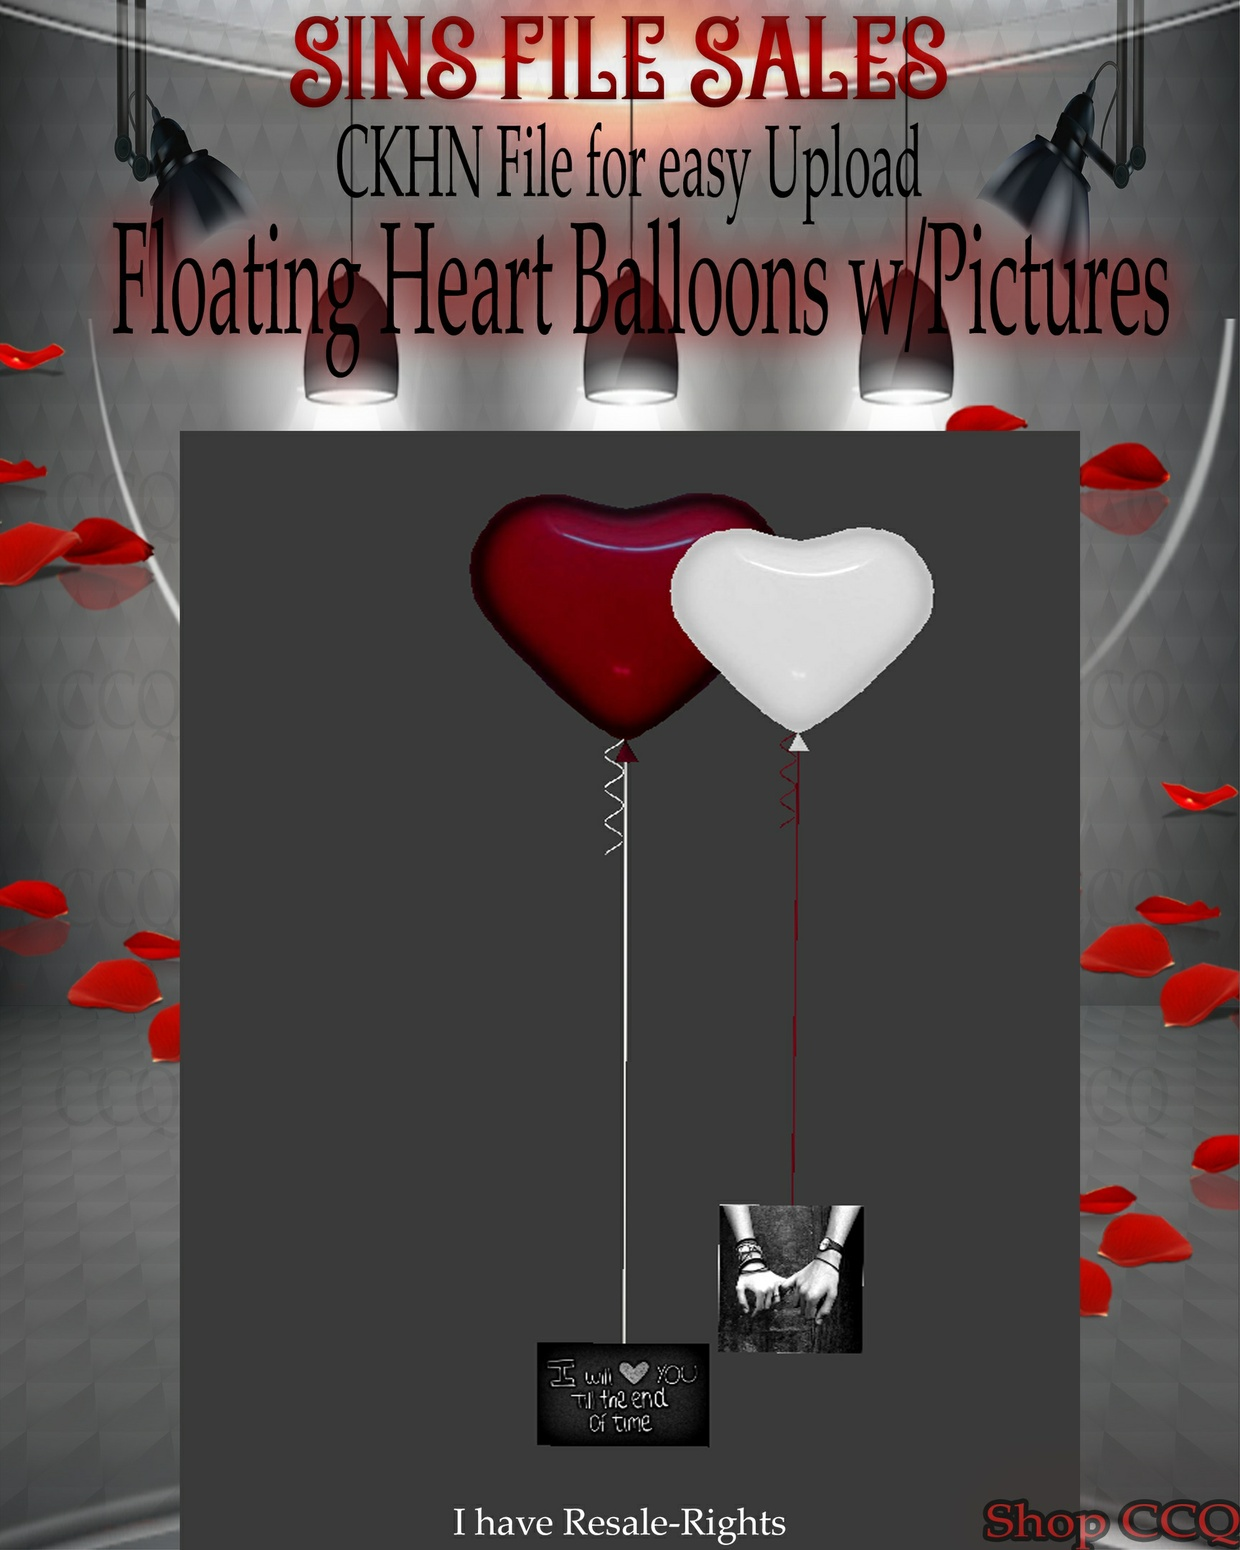 ♥Heart Floating Balloons w/Pictures Mesh*CHKN